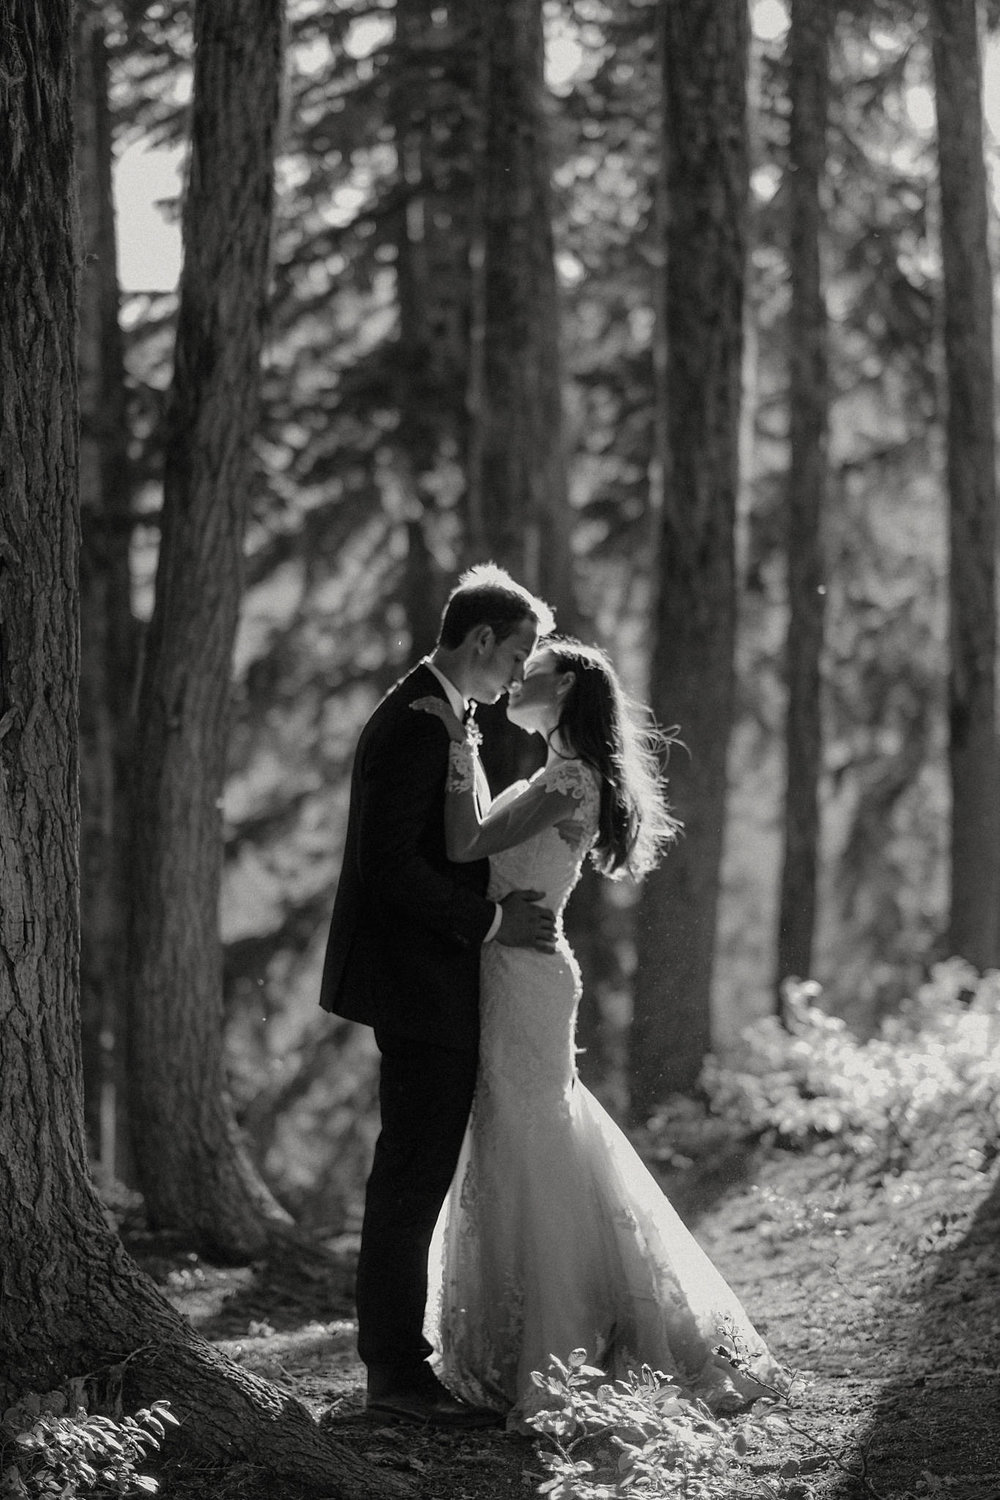 mindy-michael-cascade-mountains-elopement-wedding-46.jpg